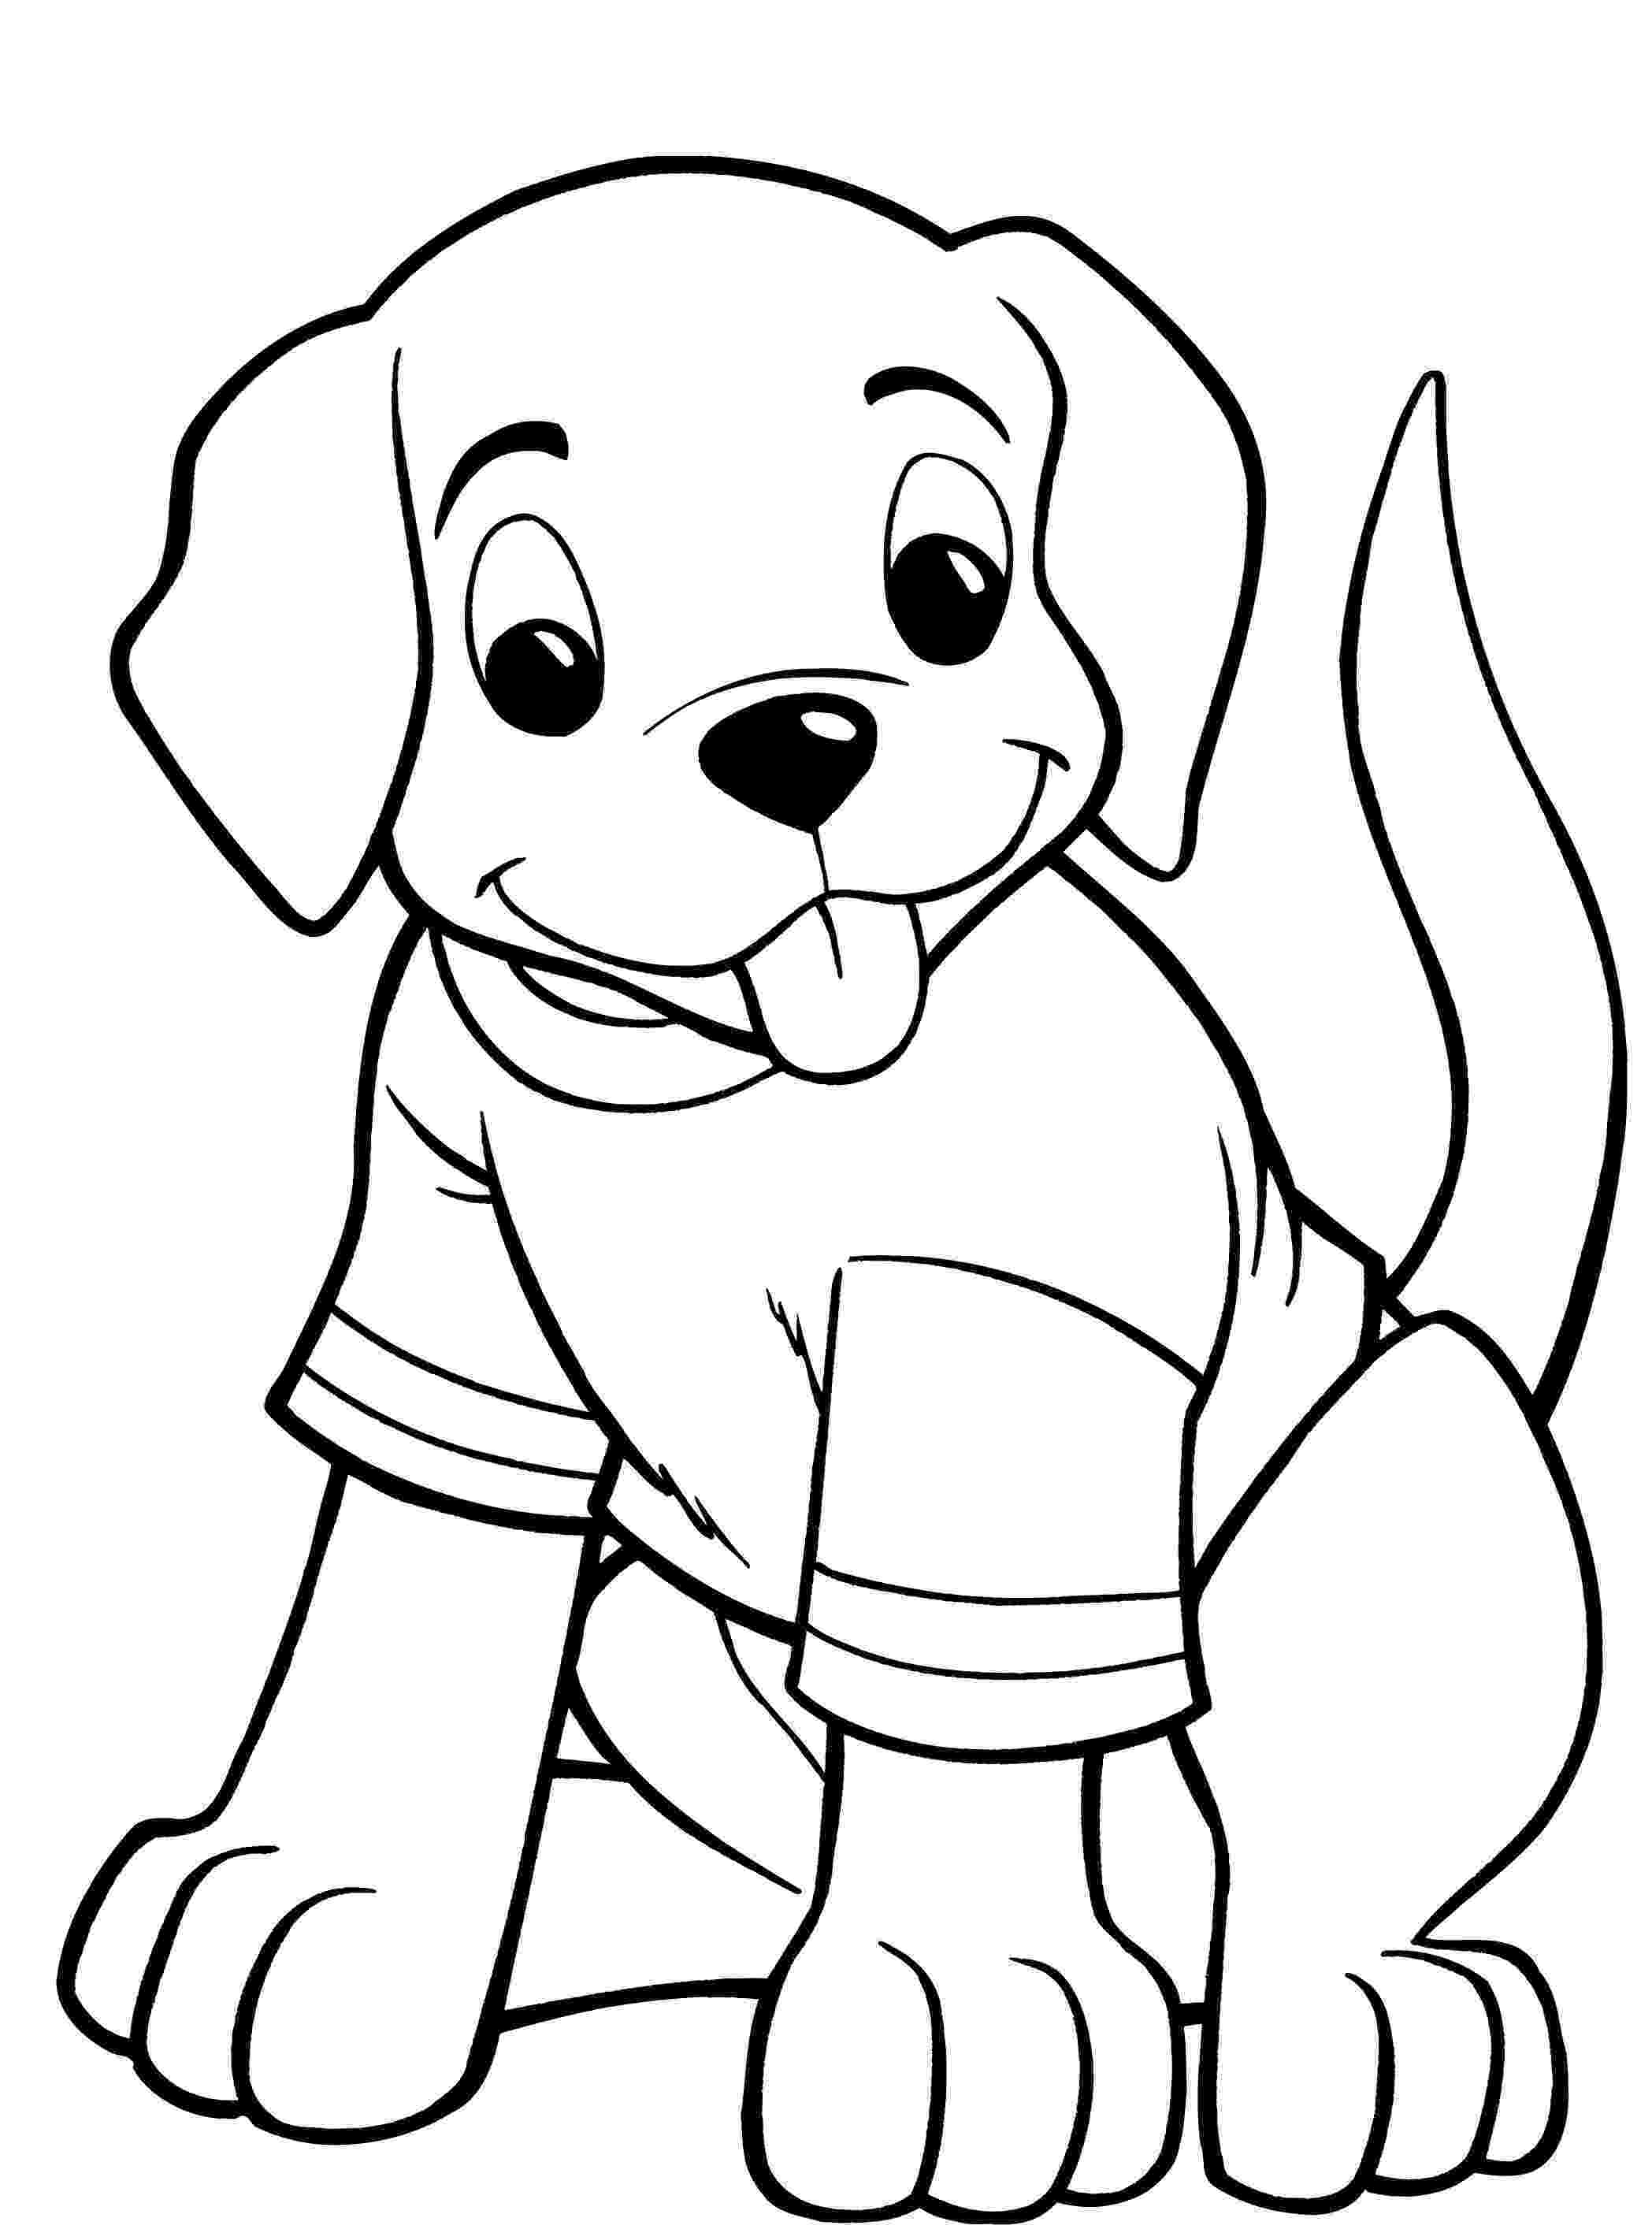 puppy coloring pages dog coloring pages for kids preschool and kindergarten puppy pages coloring